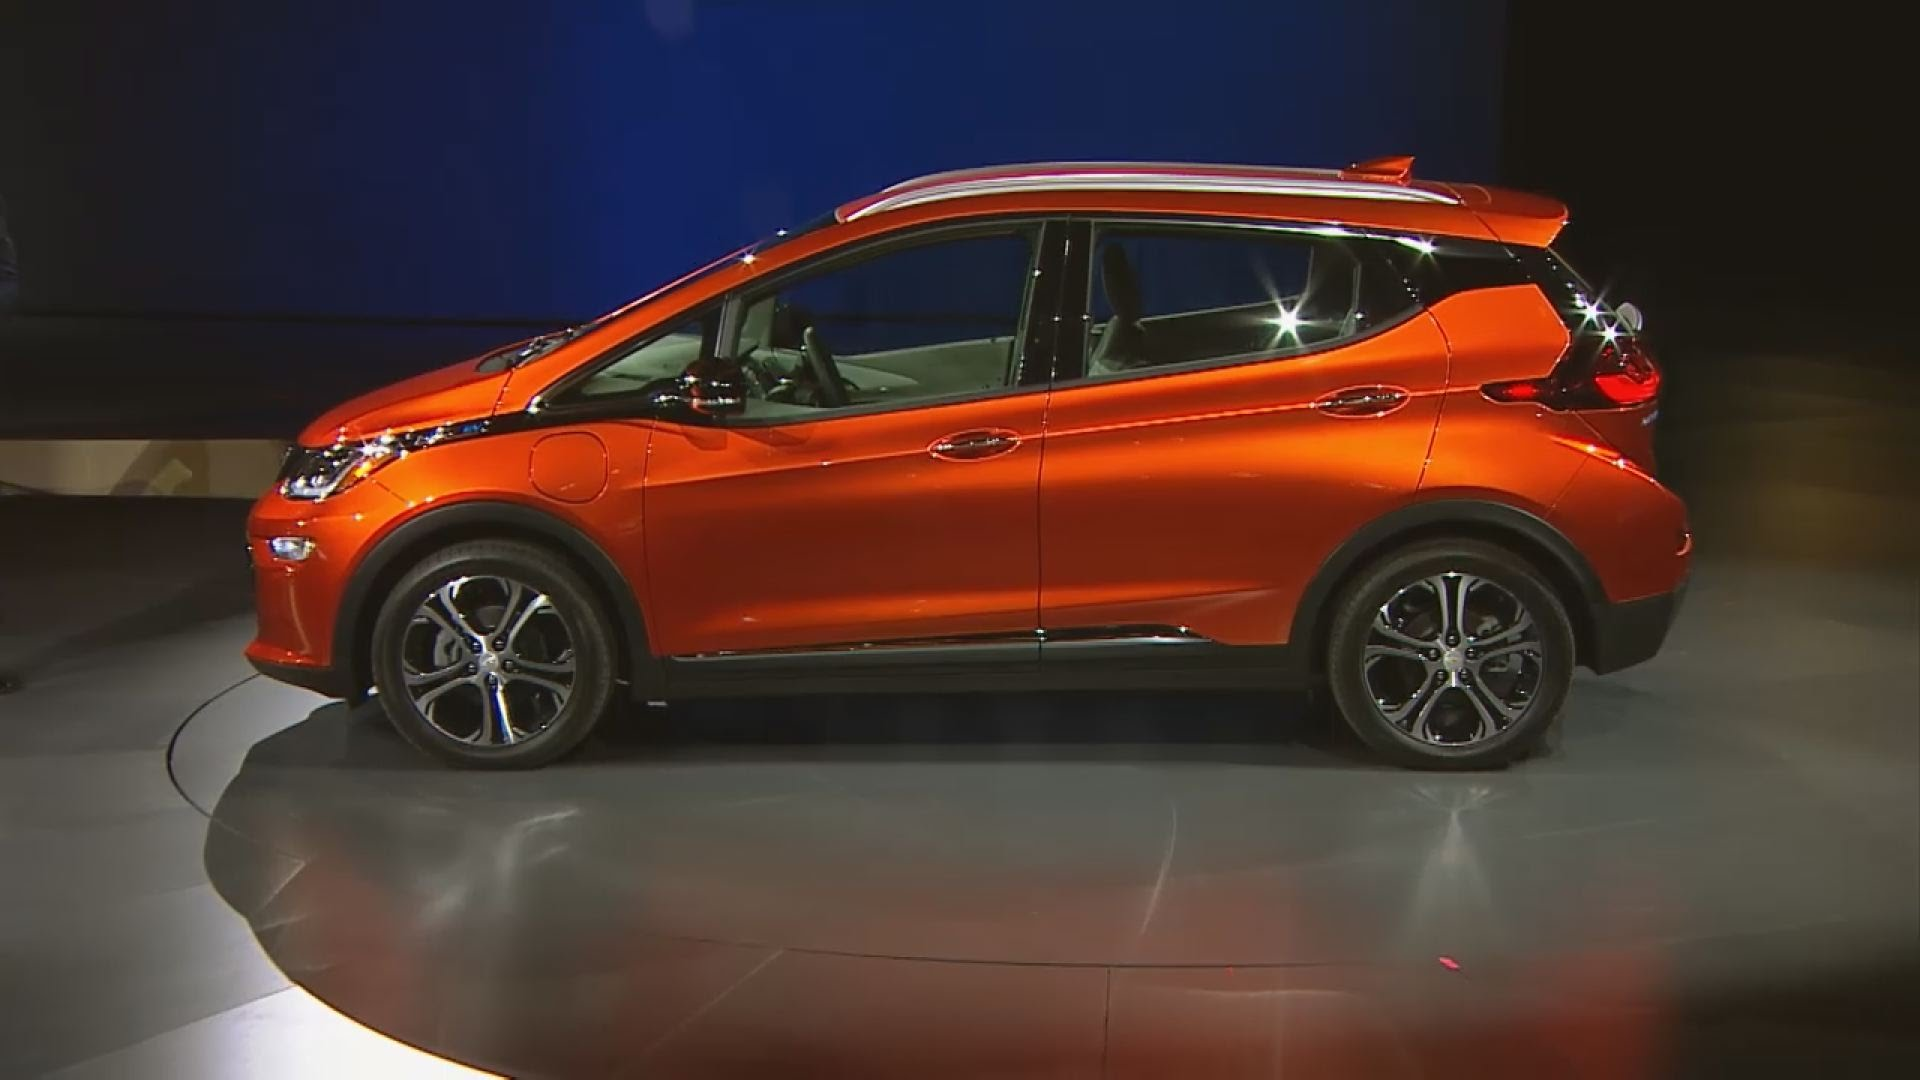 2017 chevrolet bolt ev electric car to enter production in october video canada journal. Black Bedroom Furniture Sets. Home Design Ideas